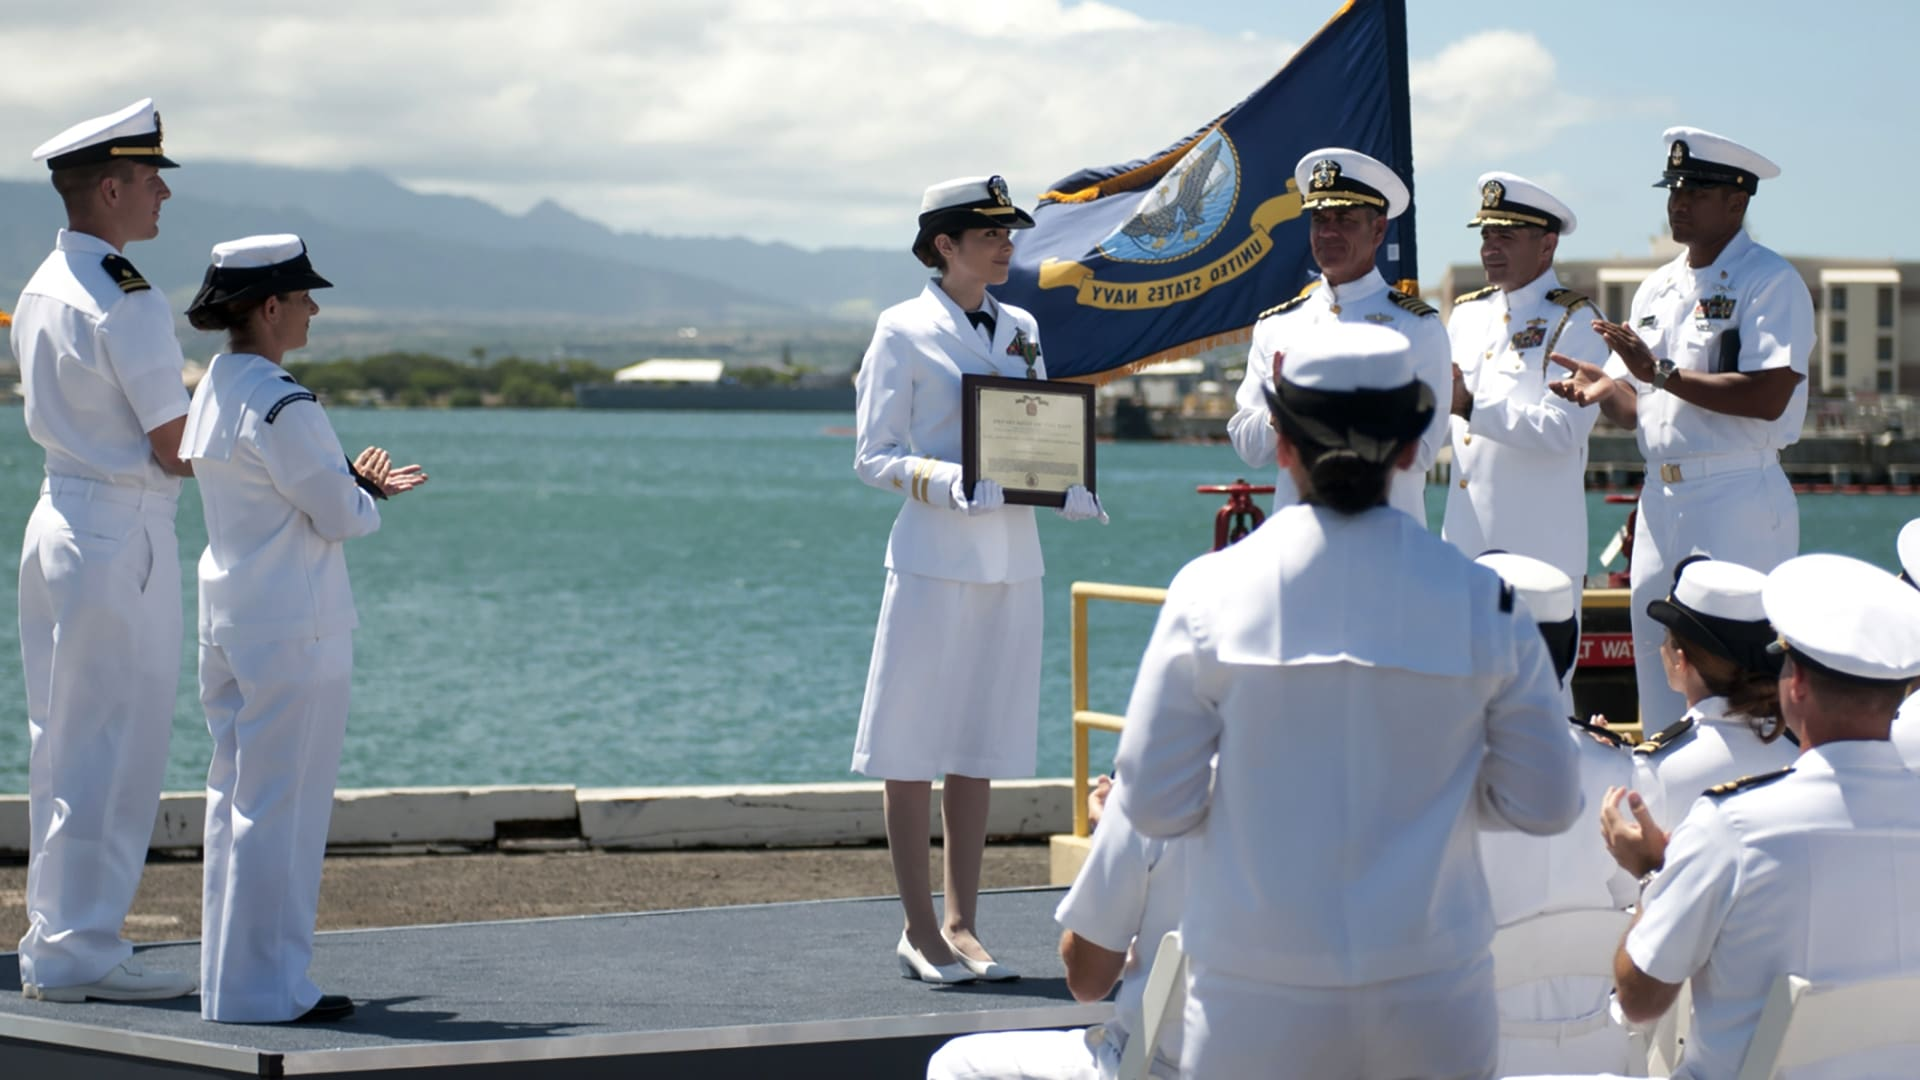 Hawaii Five-0 - Season 4 Episode 5 : Kupu 'eu